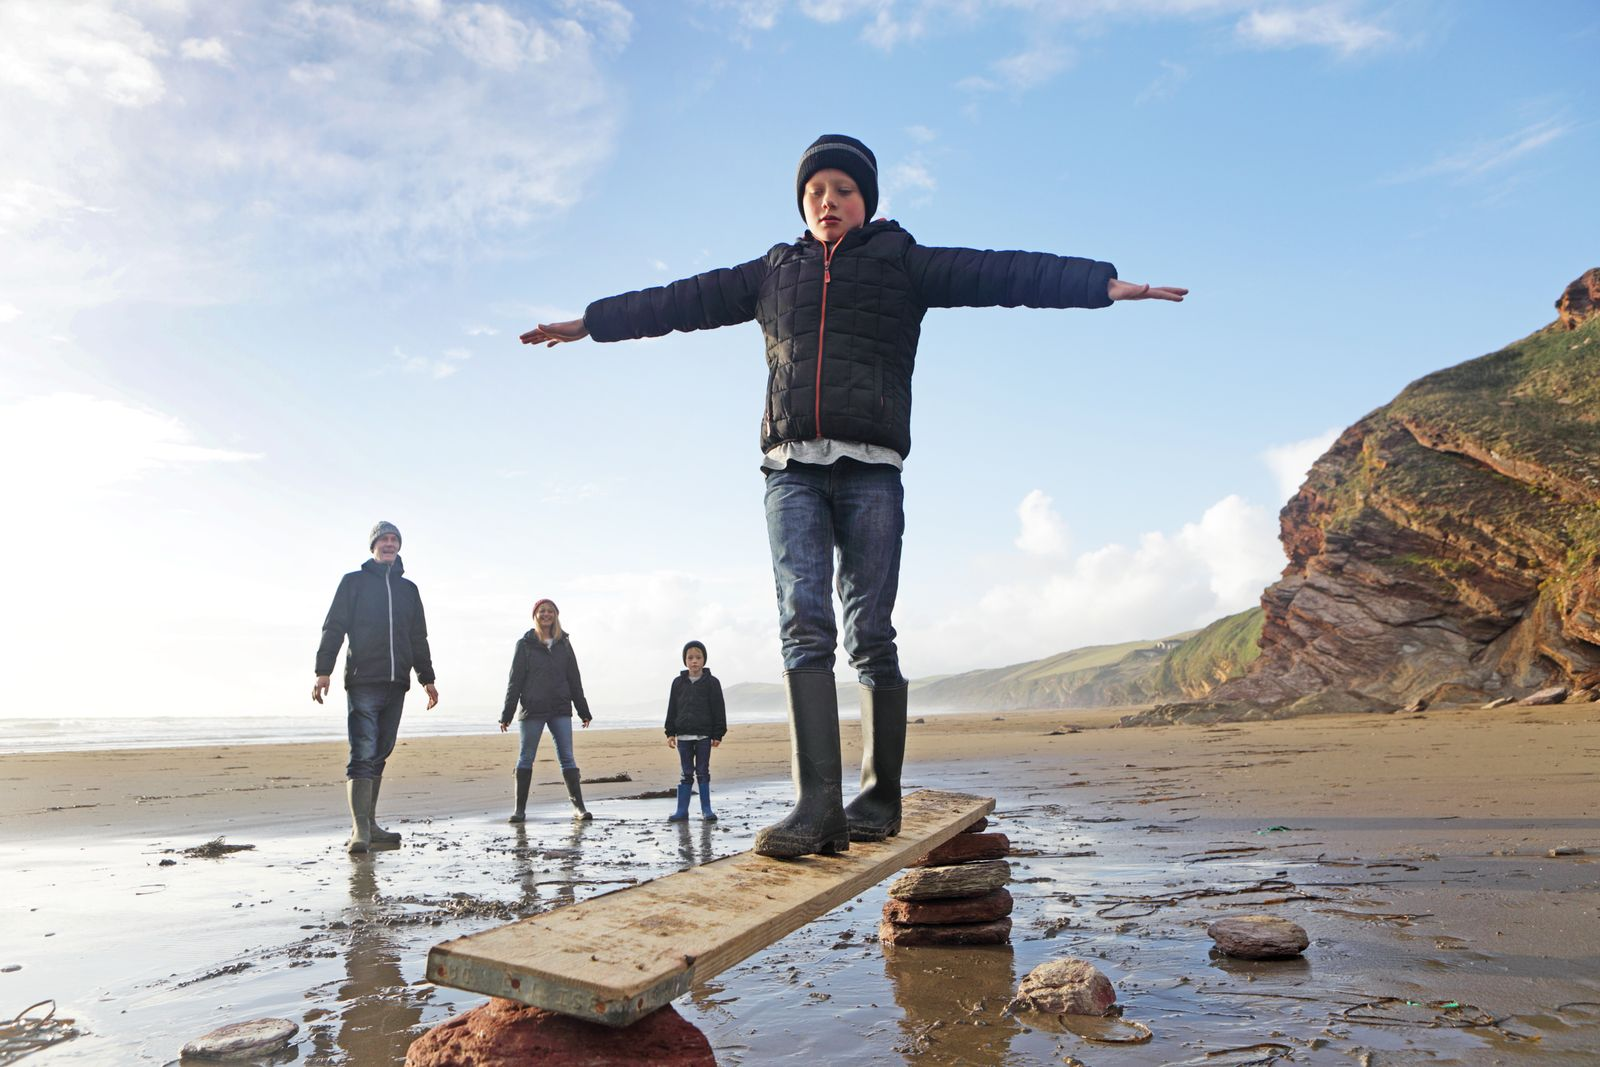 Boys balancing on plank of wood, with family on beach